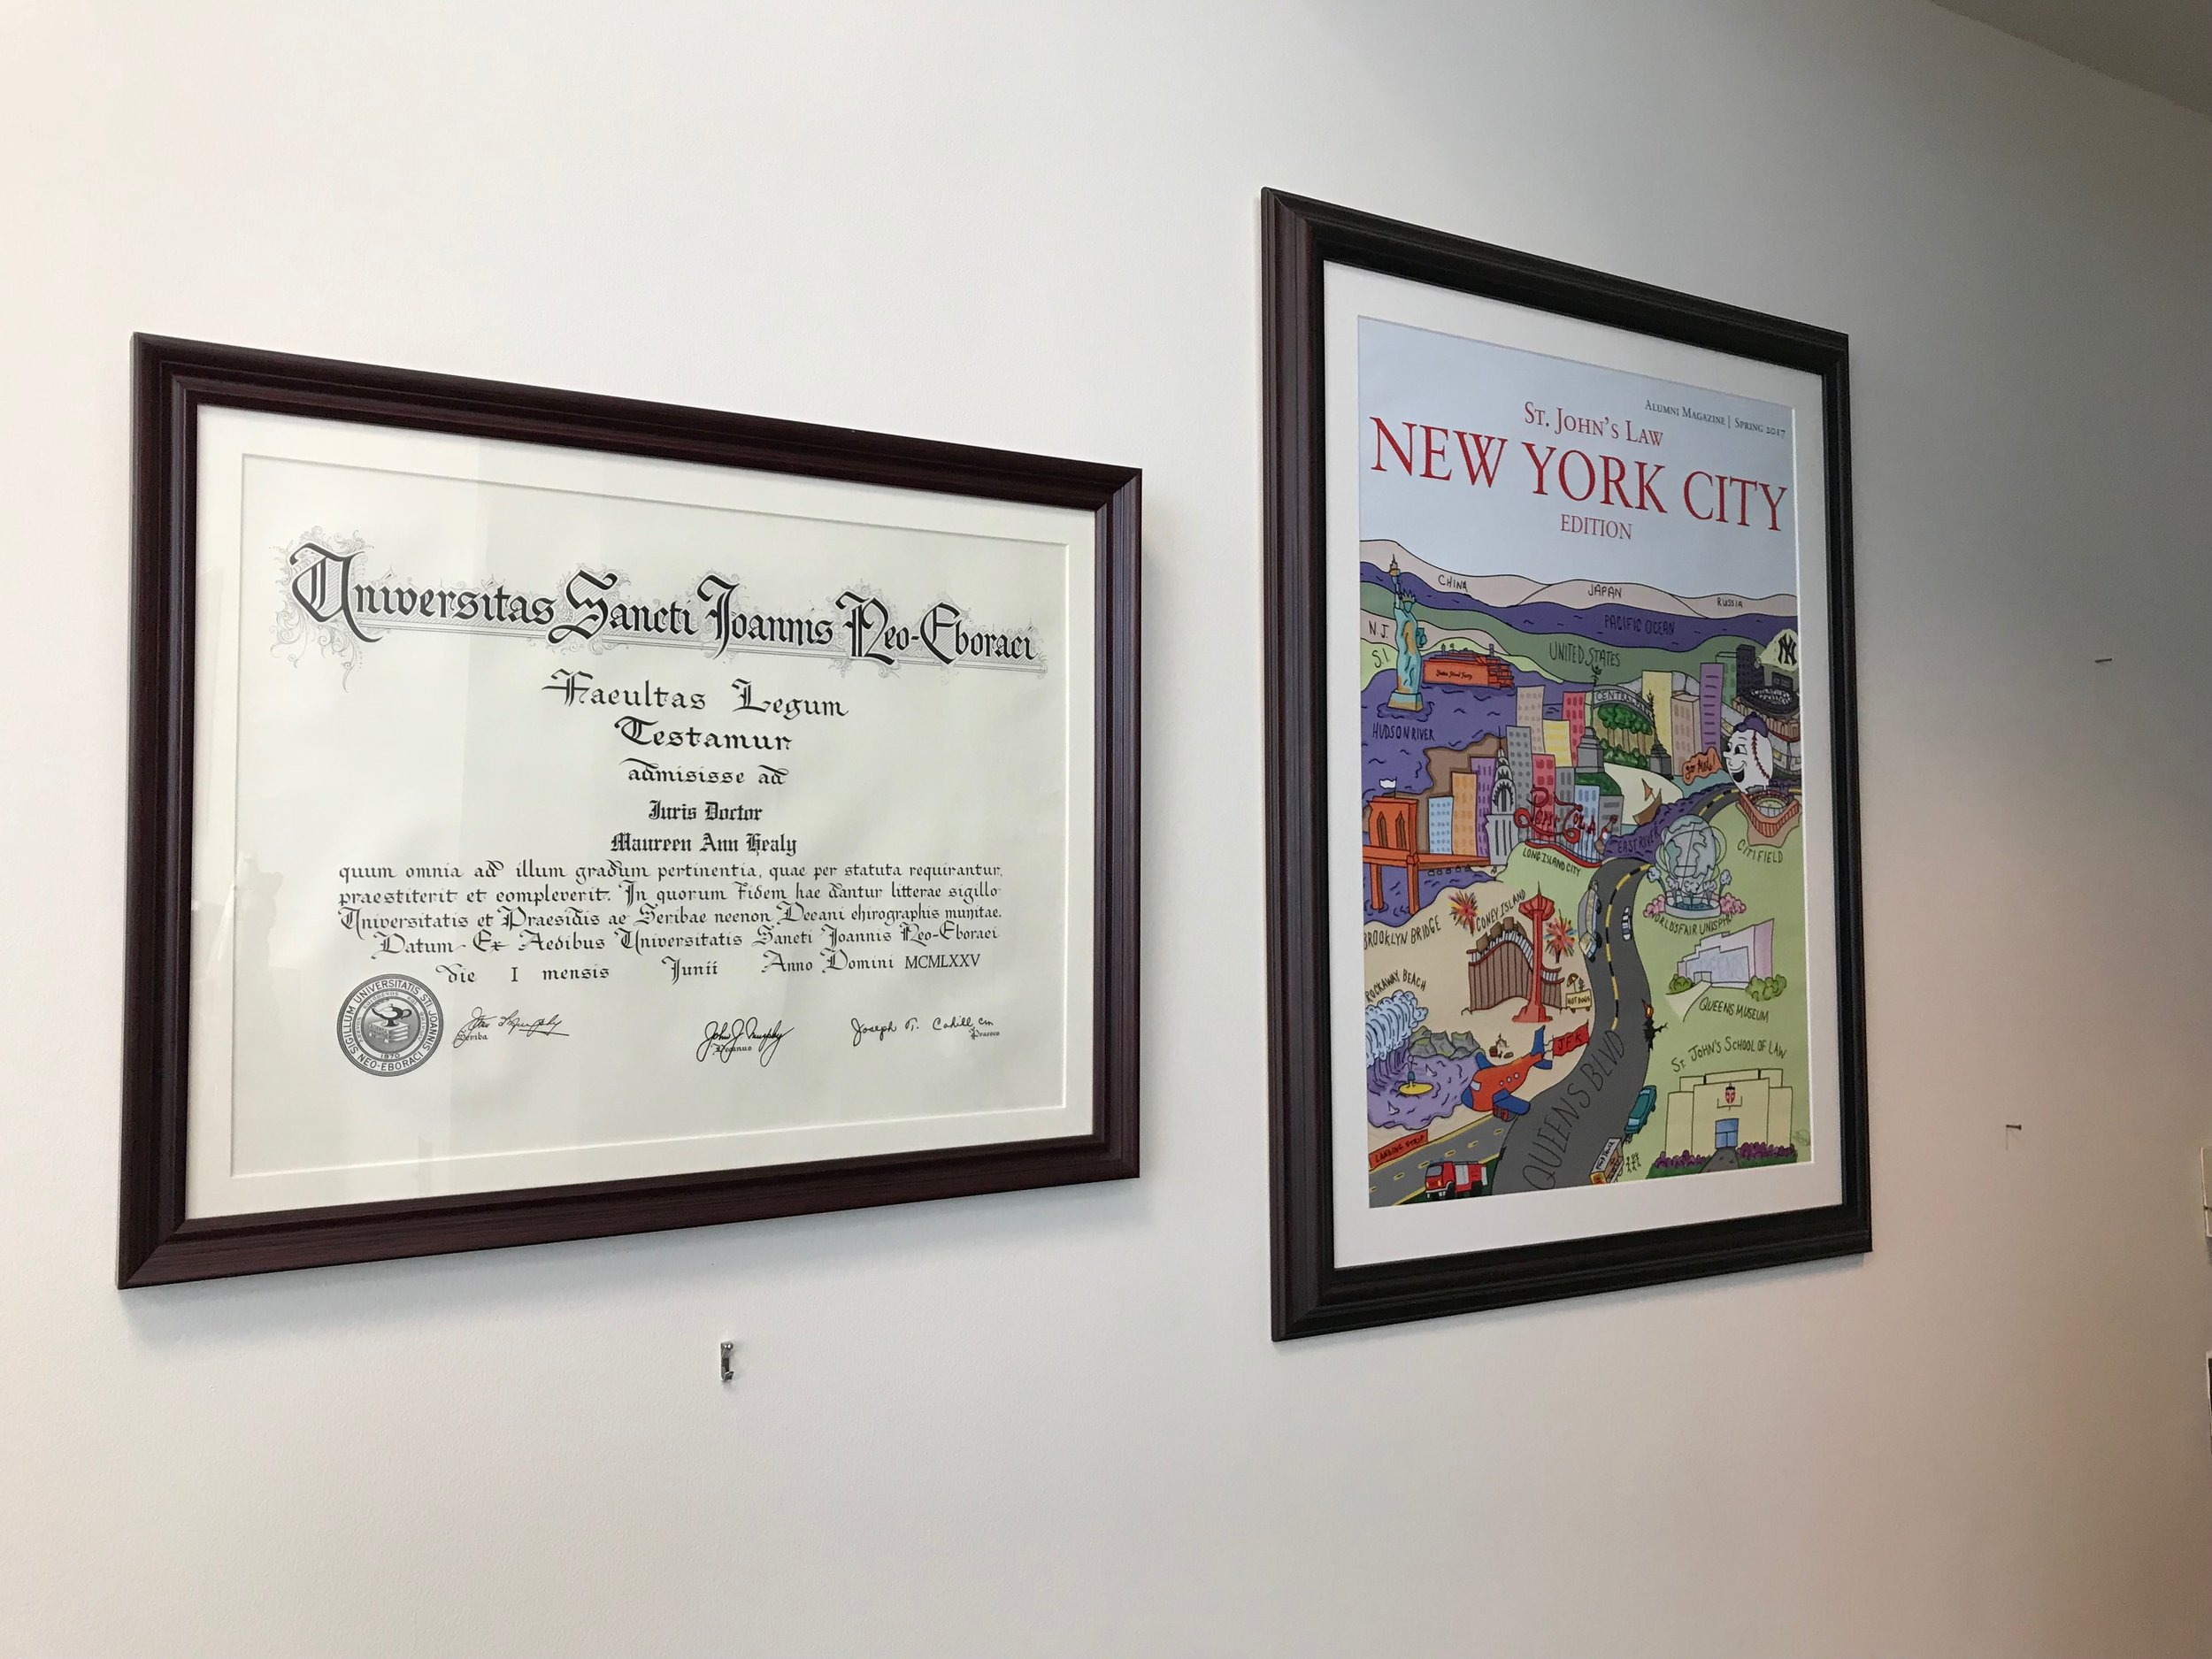 Healy's law degree hangs on the wall next a print of the St. John's alumni magazine. //  Eagle  photos by David Brand